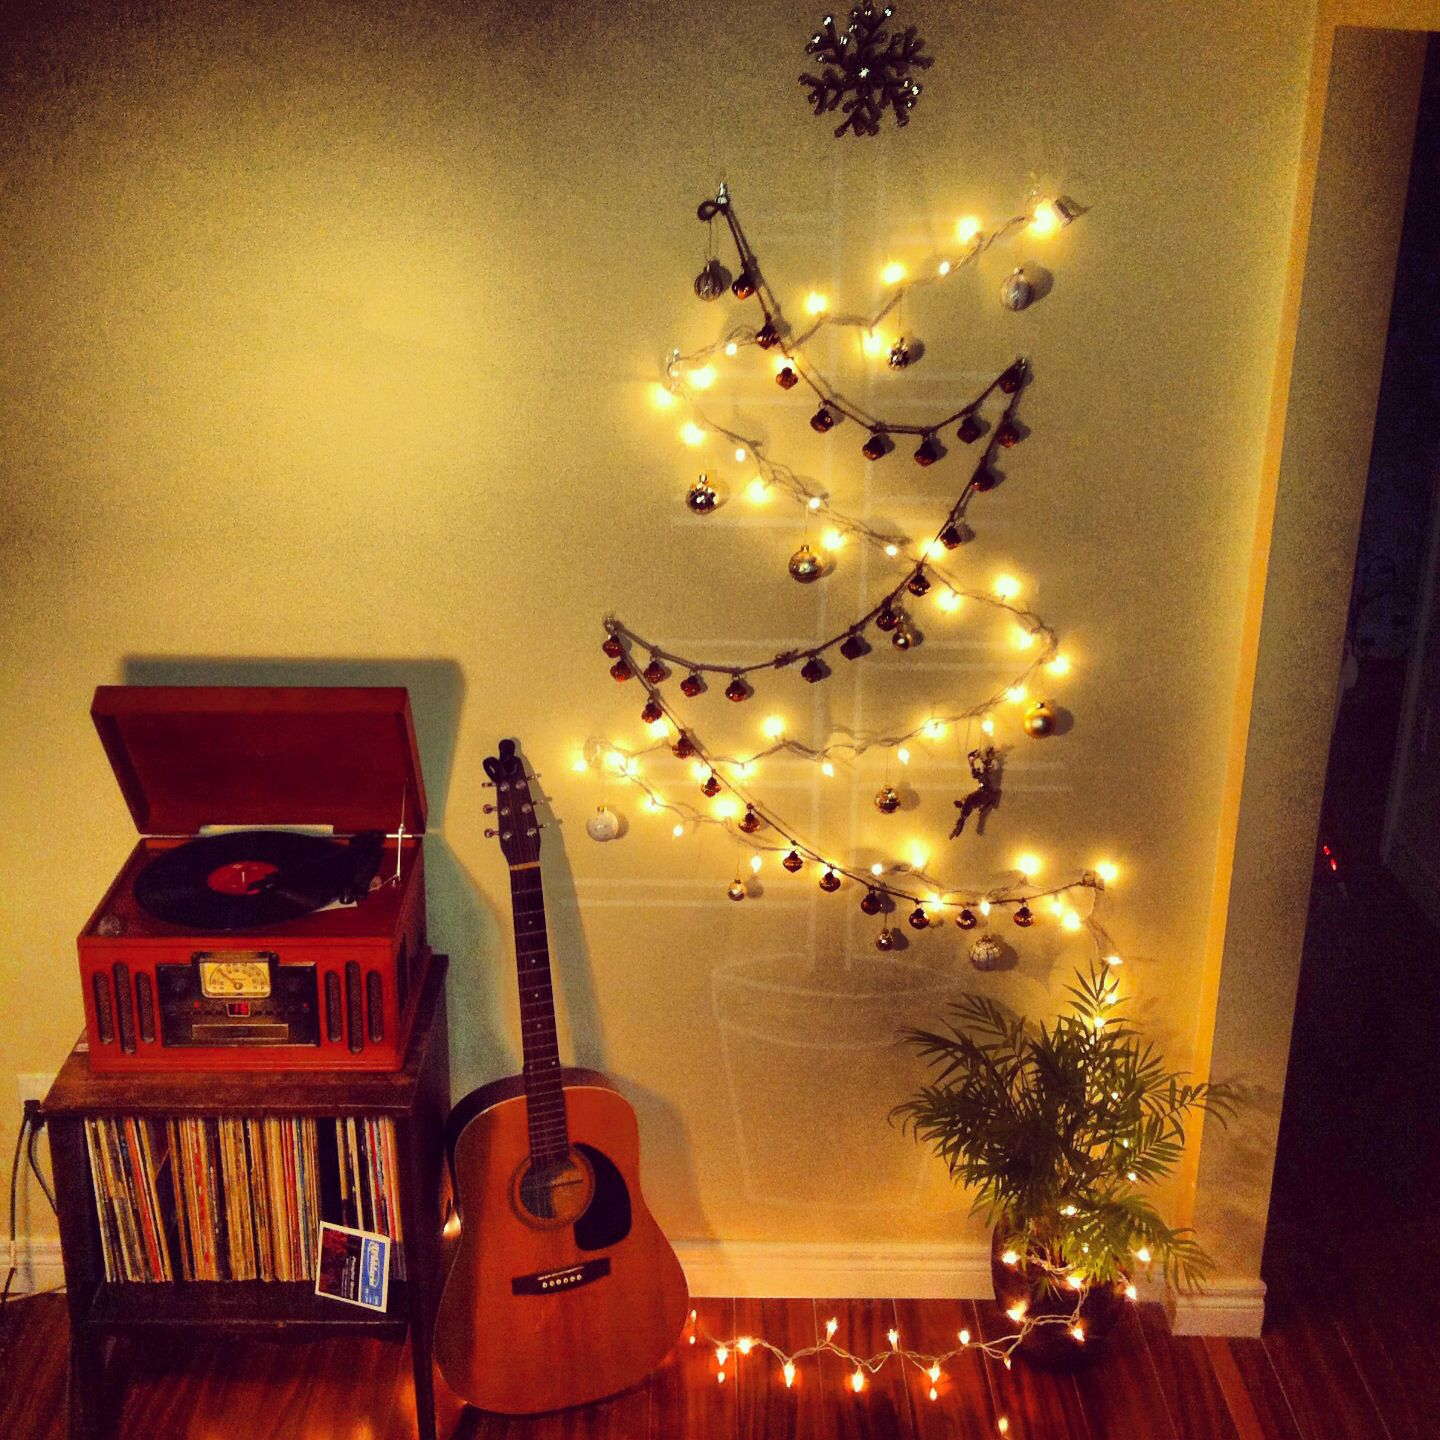 My Christmas tree. #smallspaces #holidaydecor #apartmentliving